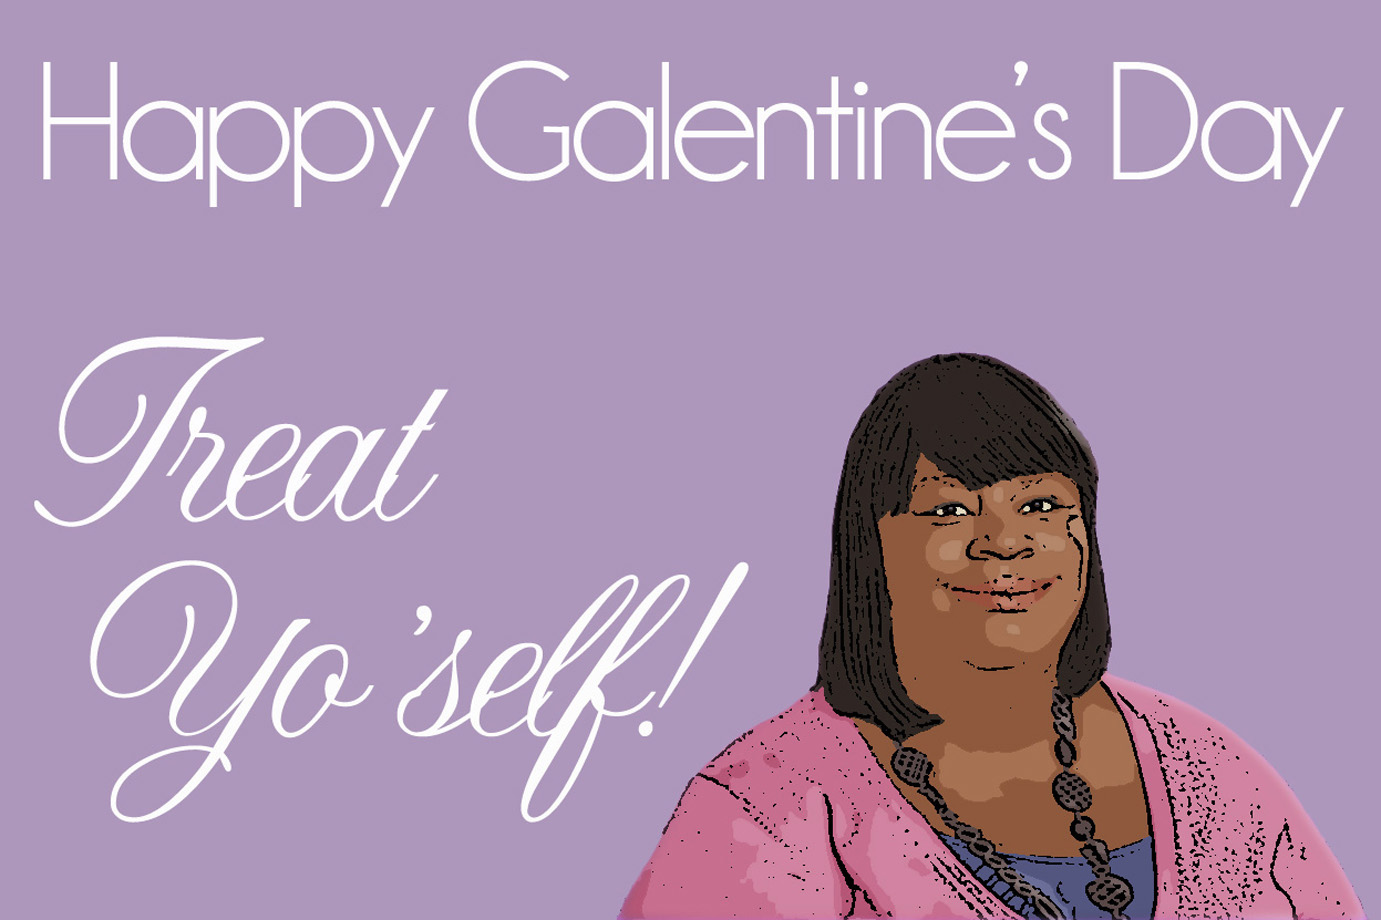 galentine's day - photo #2